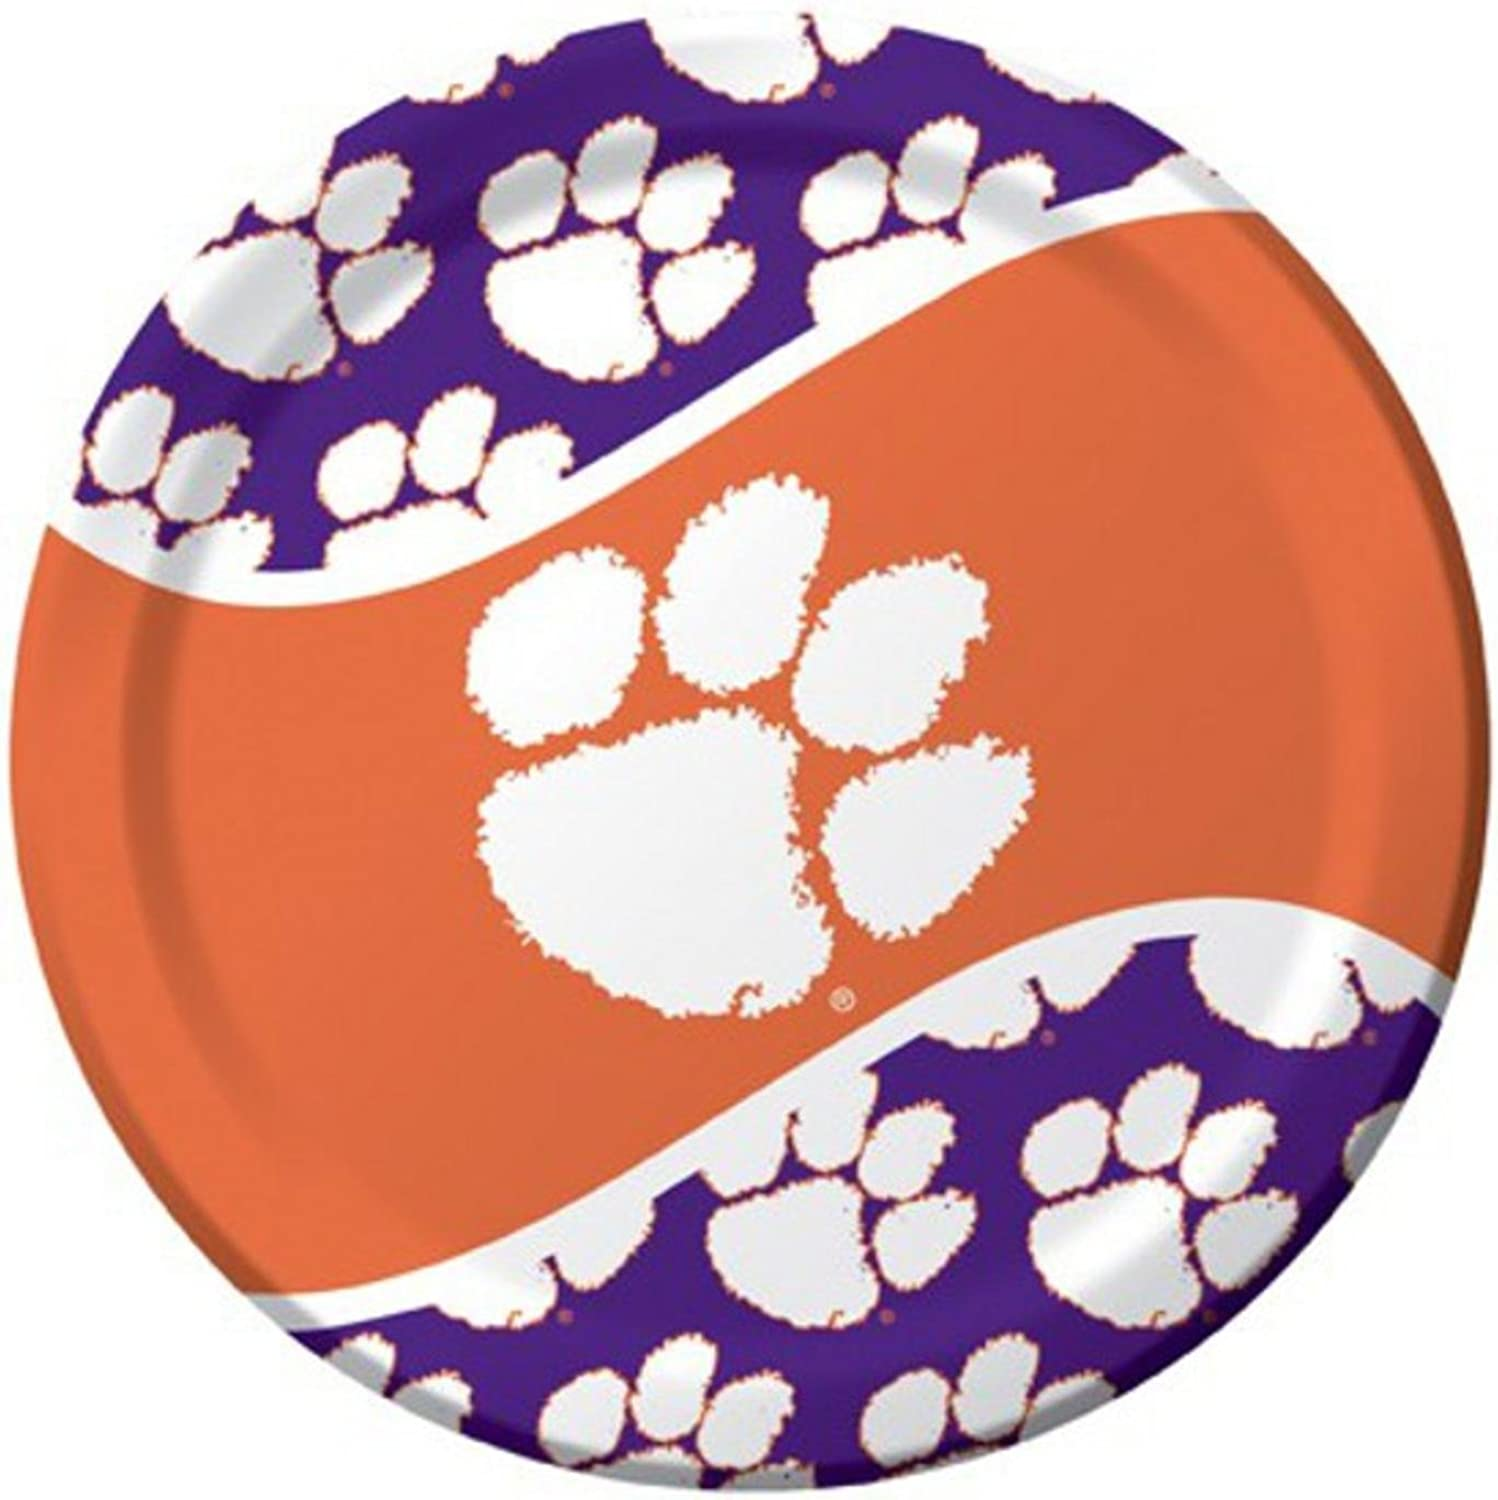 Pack of 96 NCAA Clemson Tigers Round Tailgate Party Paper Dinner Plates 8.75